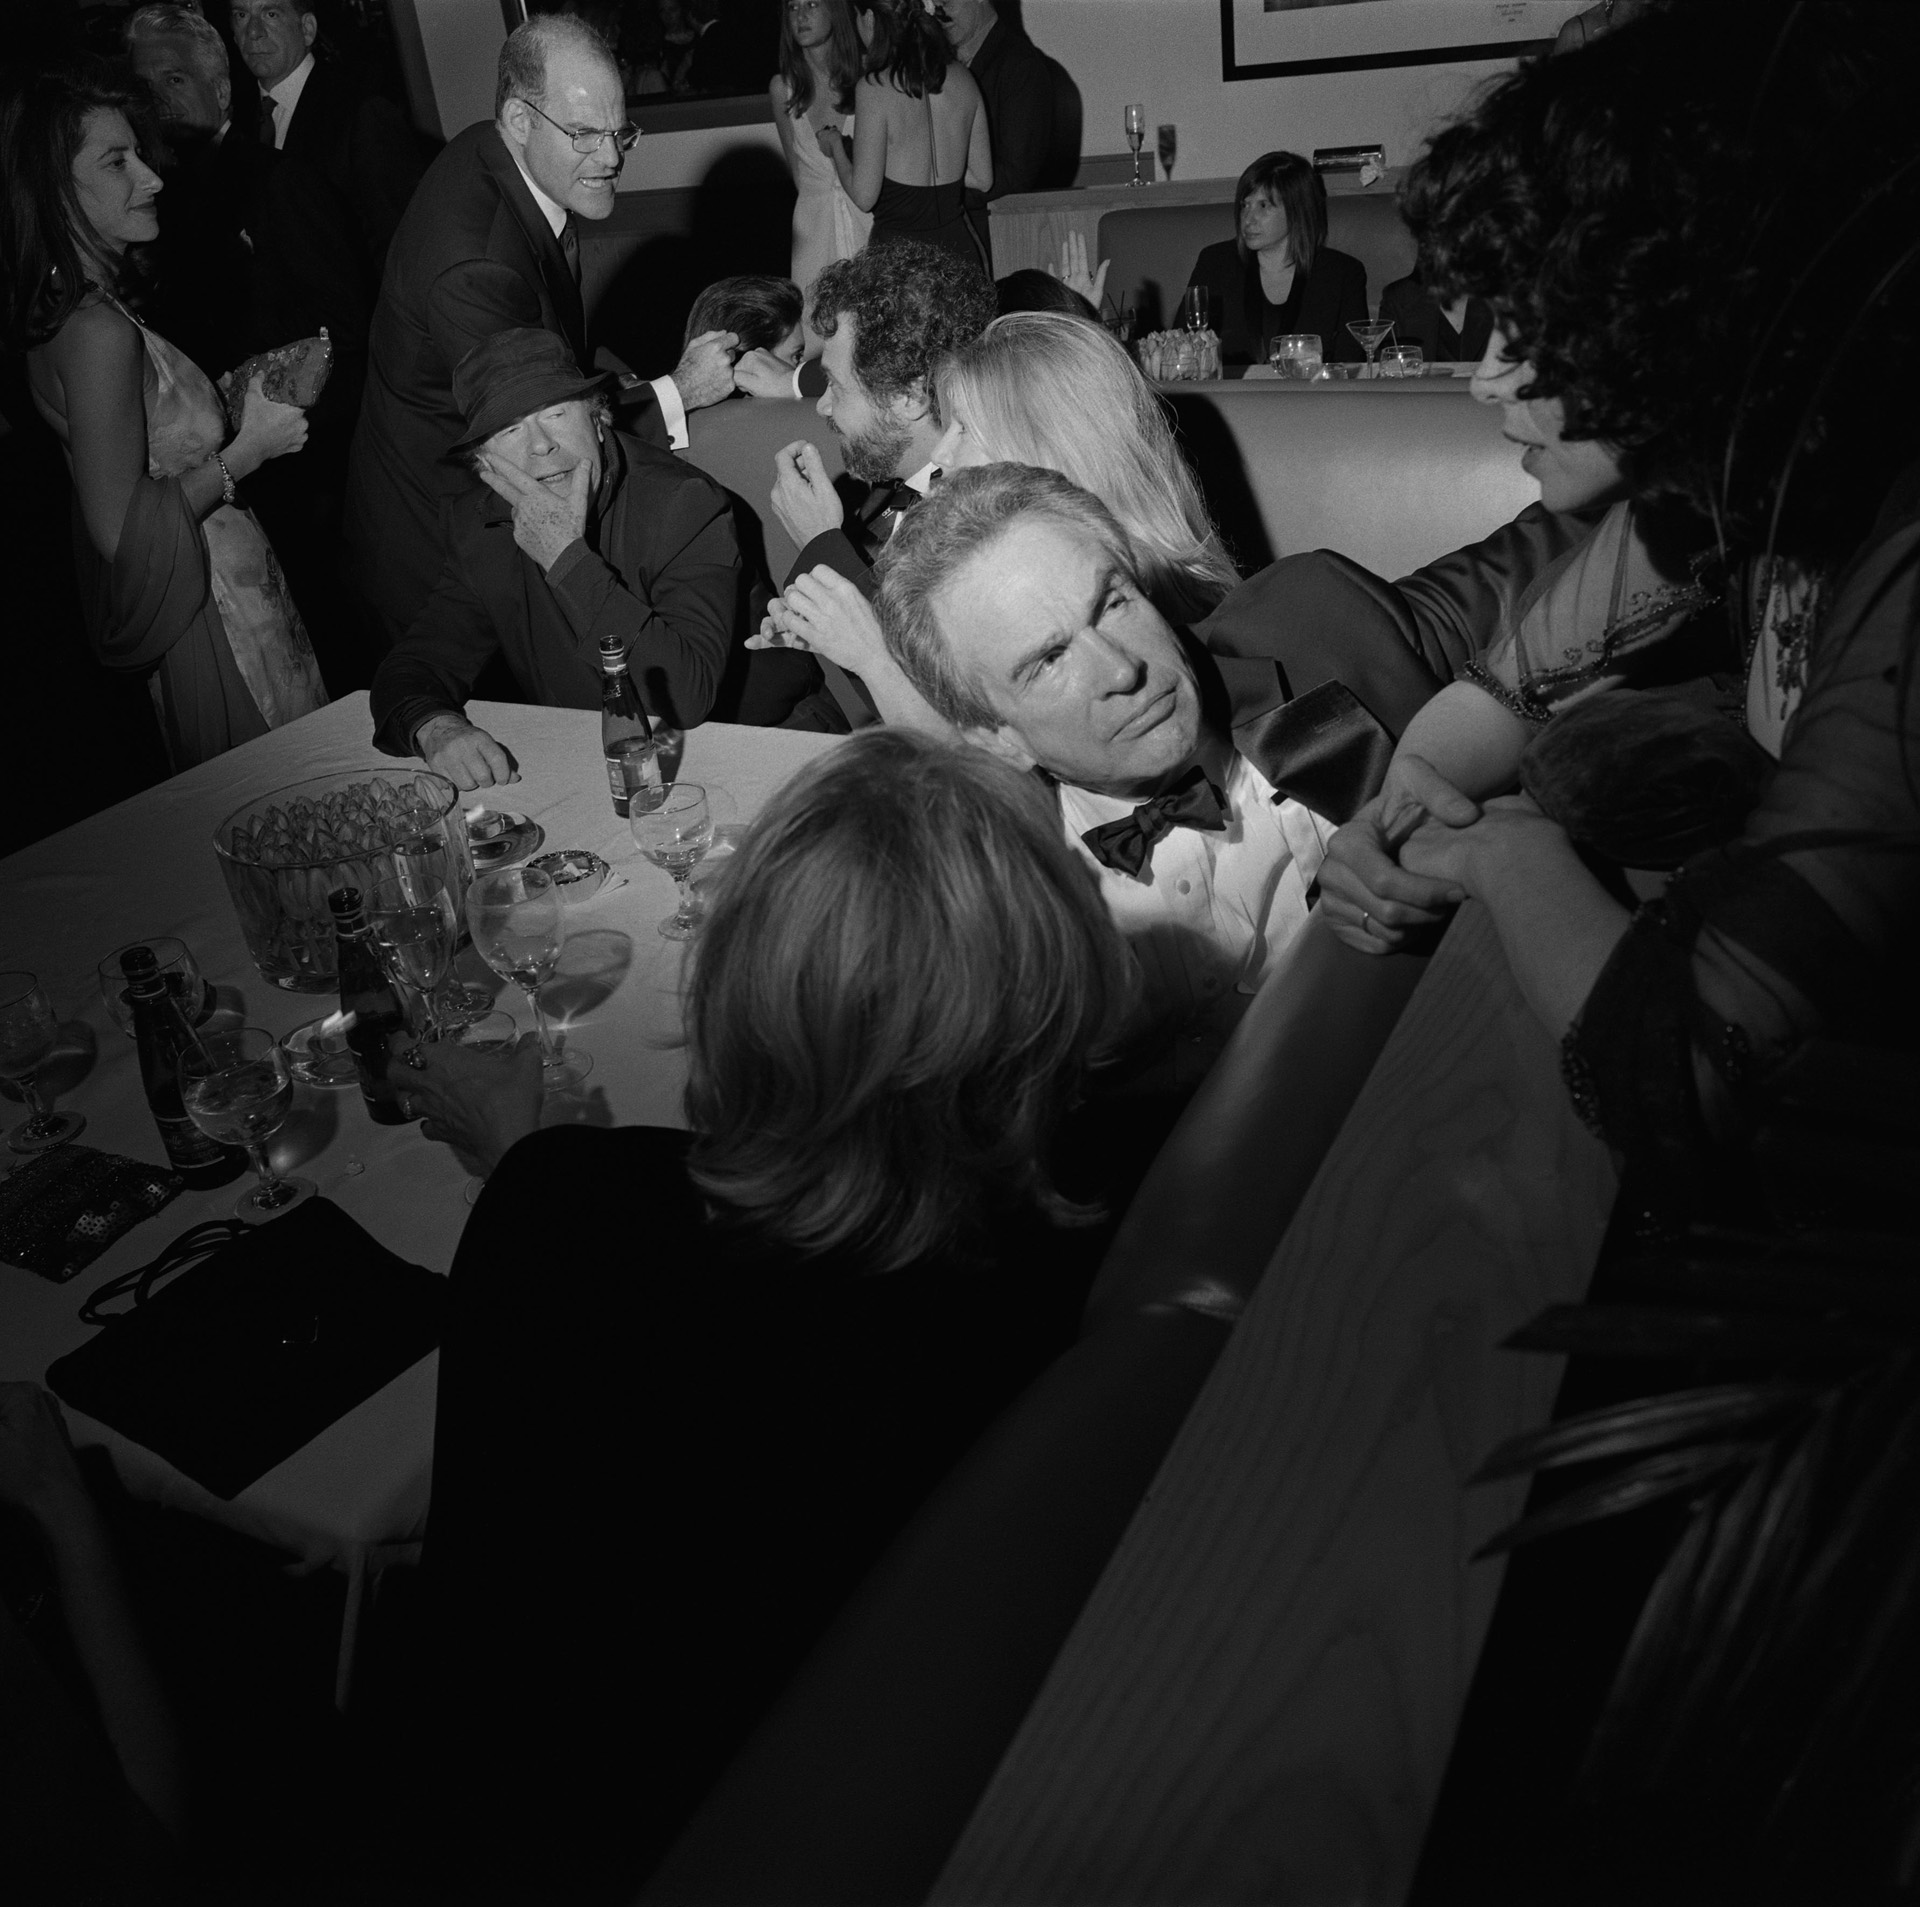 Larry Fink -Hollywood Parties - The Eye of Photography Magazine